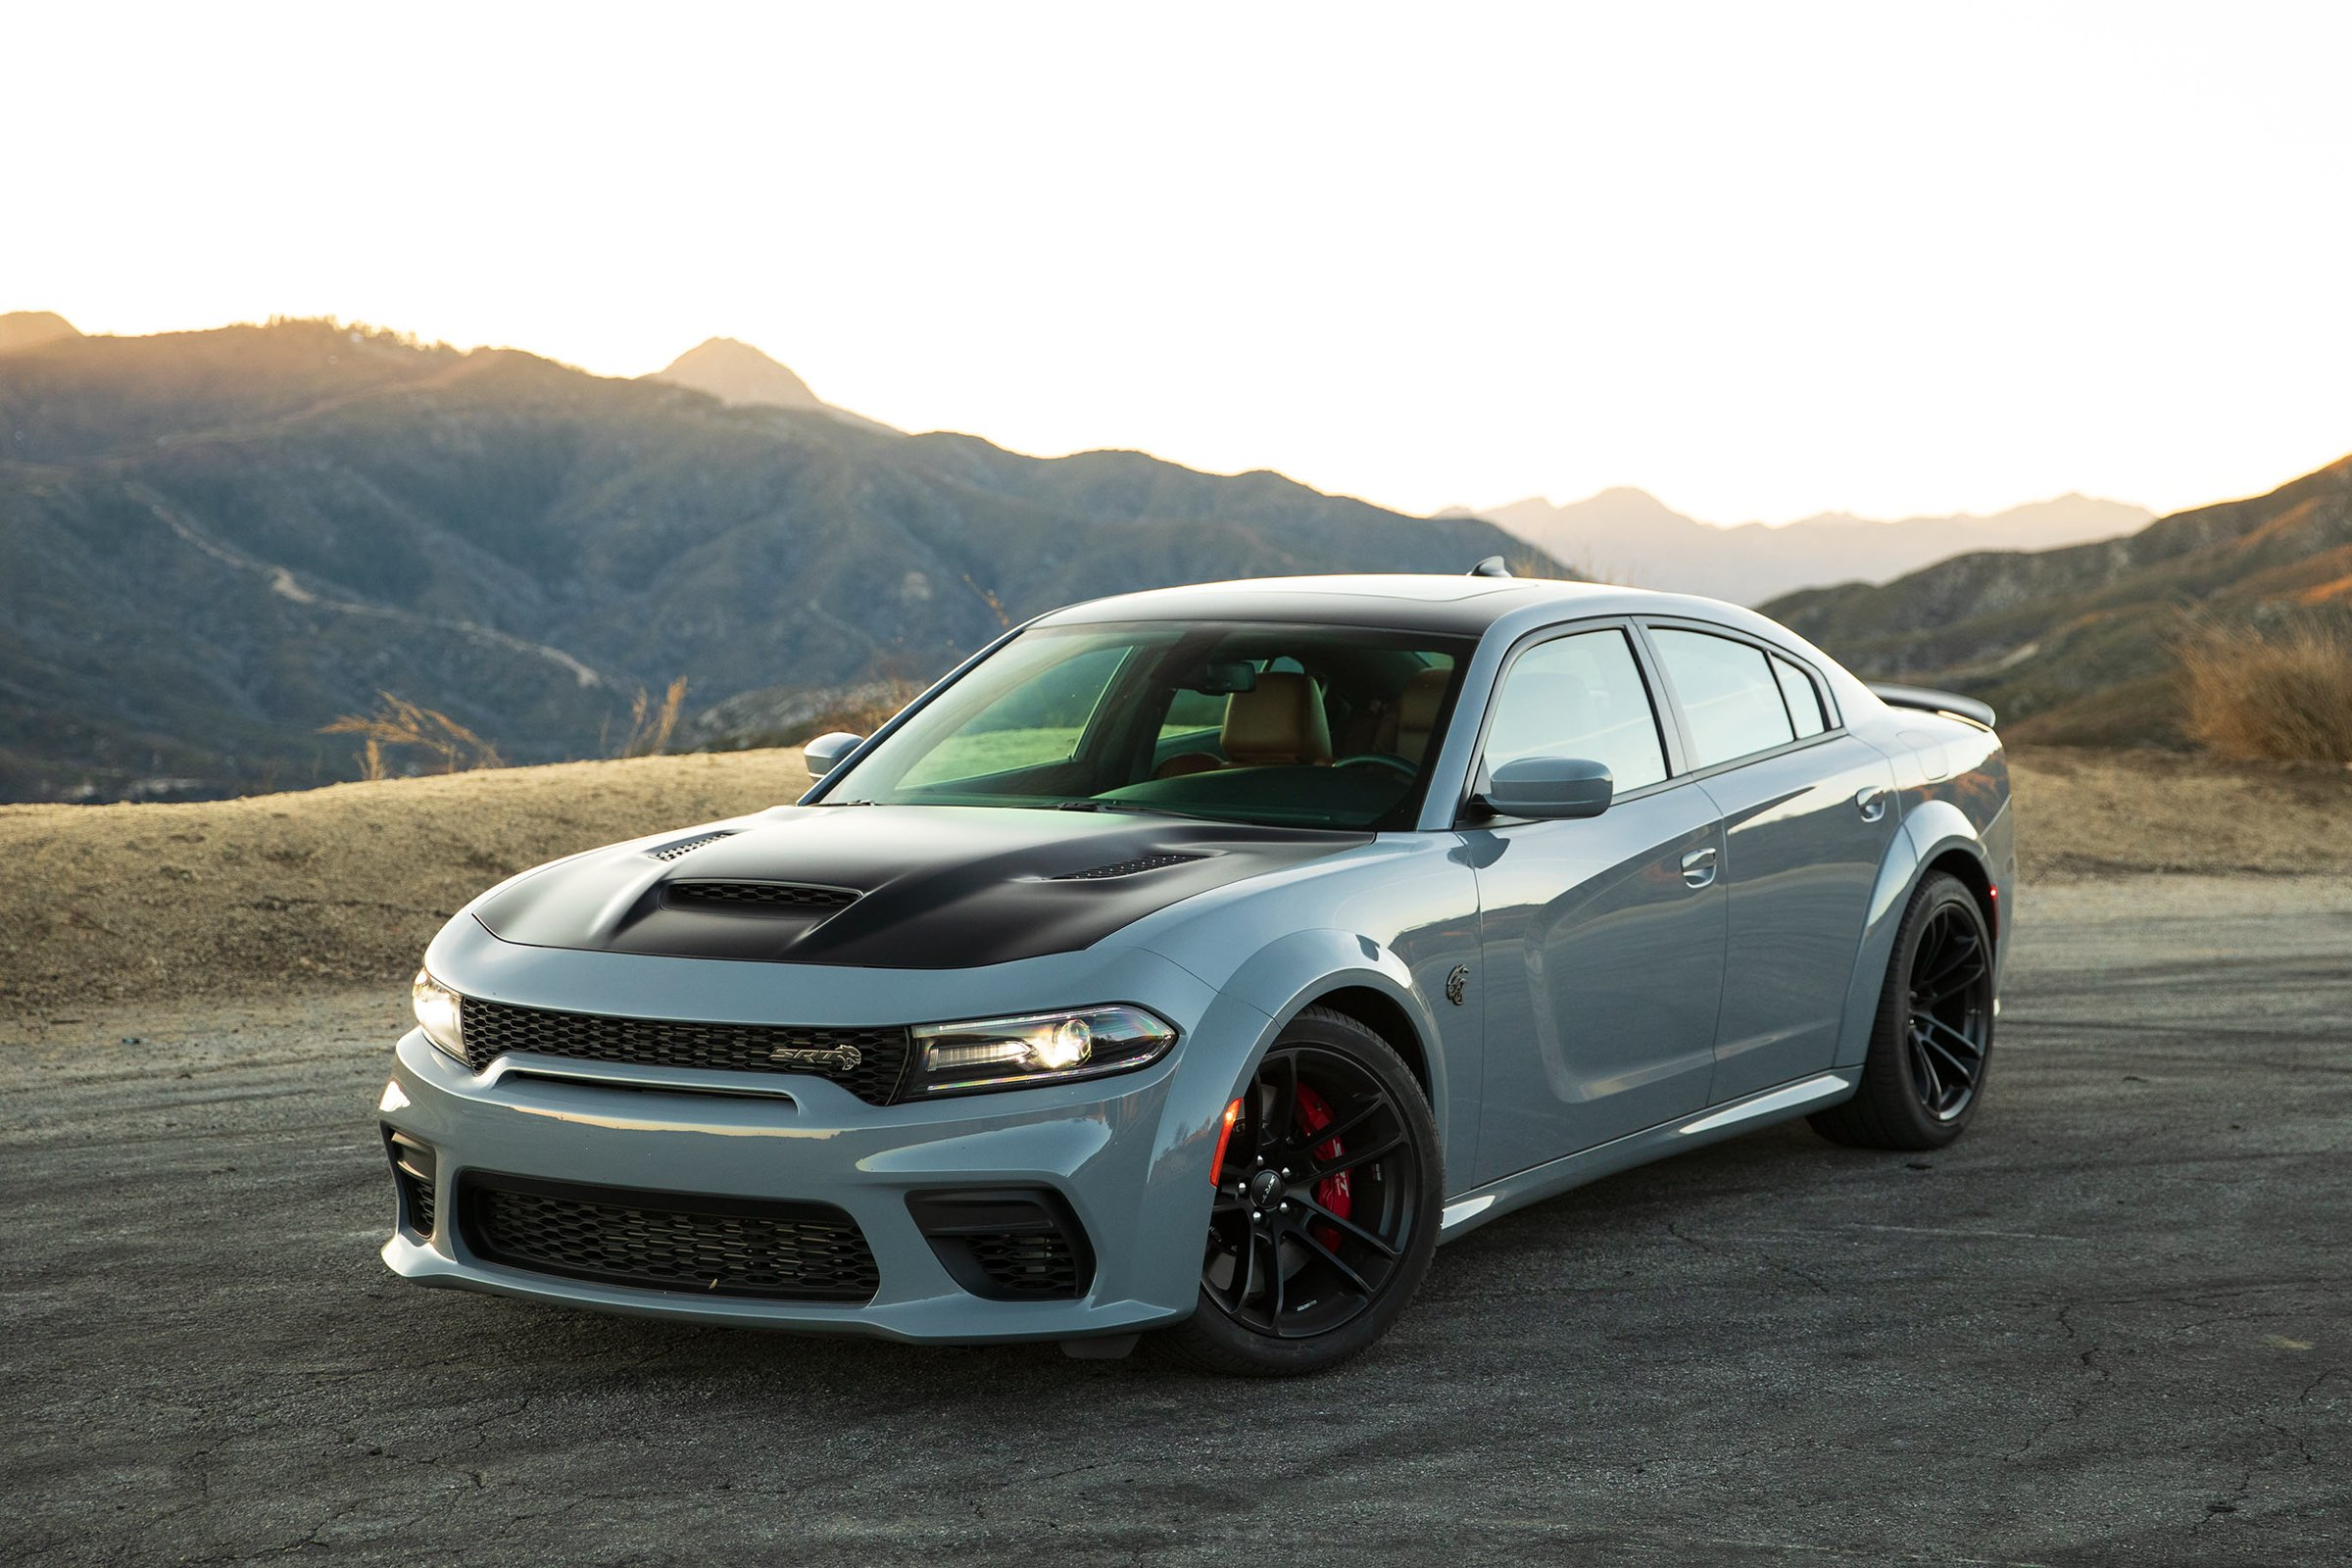 Dodge Charger Hellcat Redeye